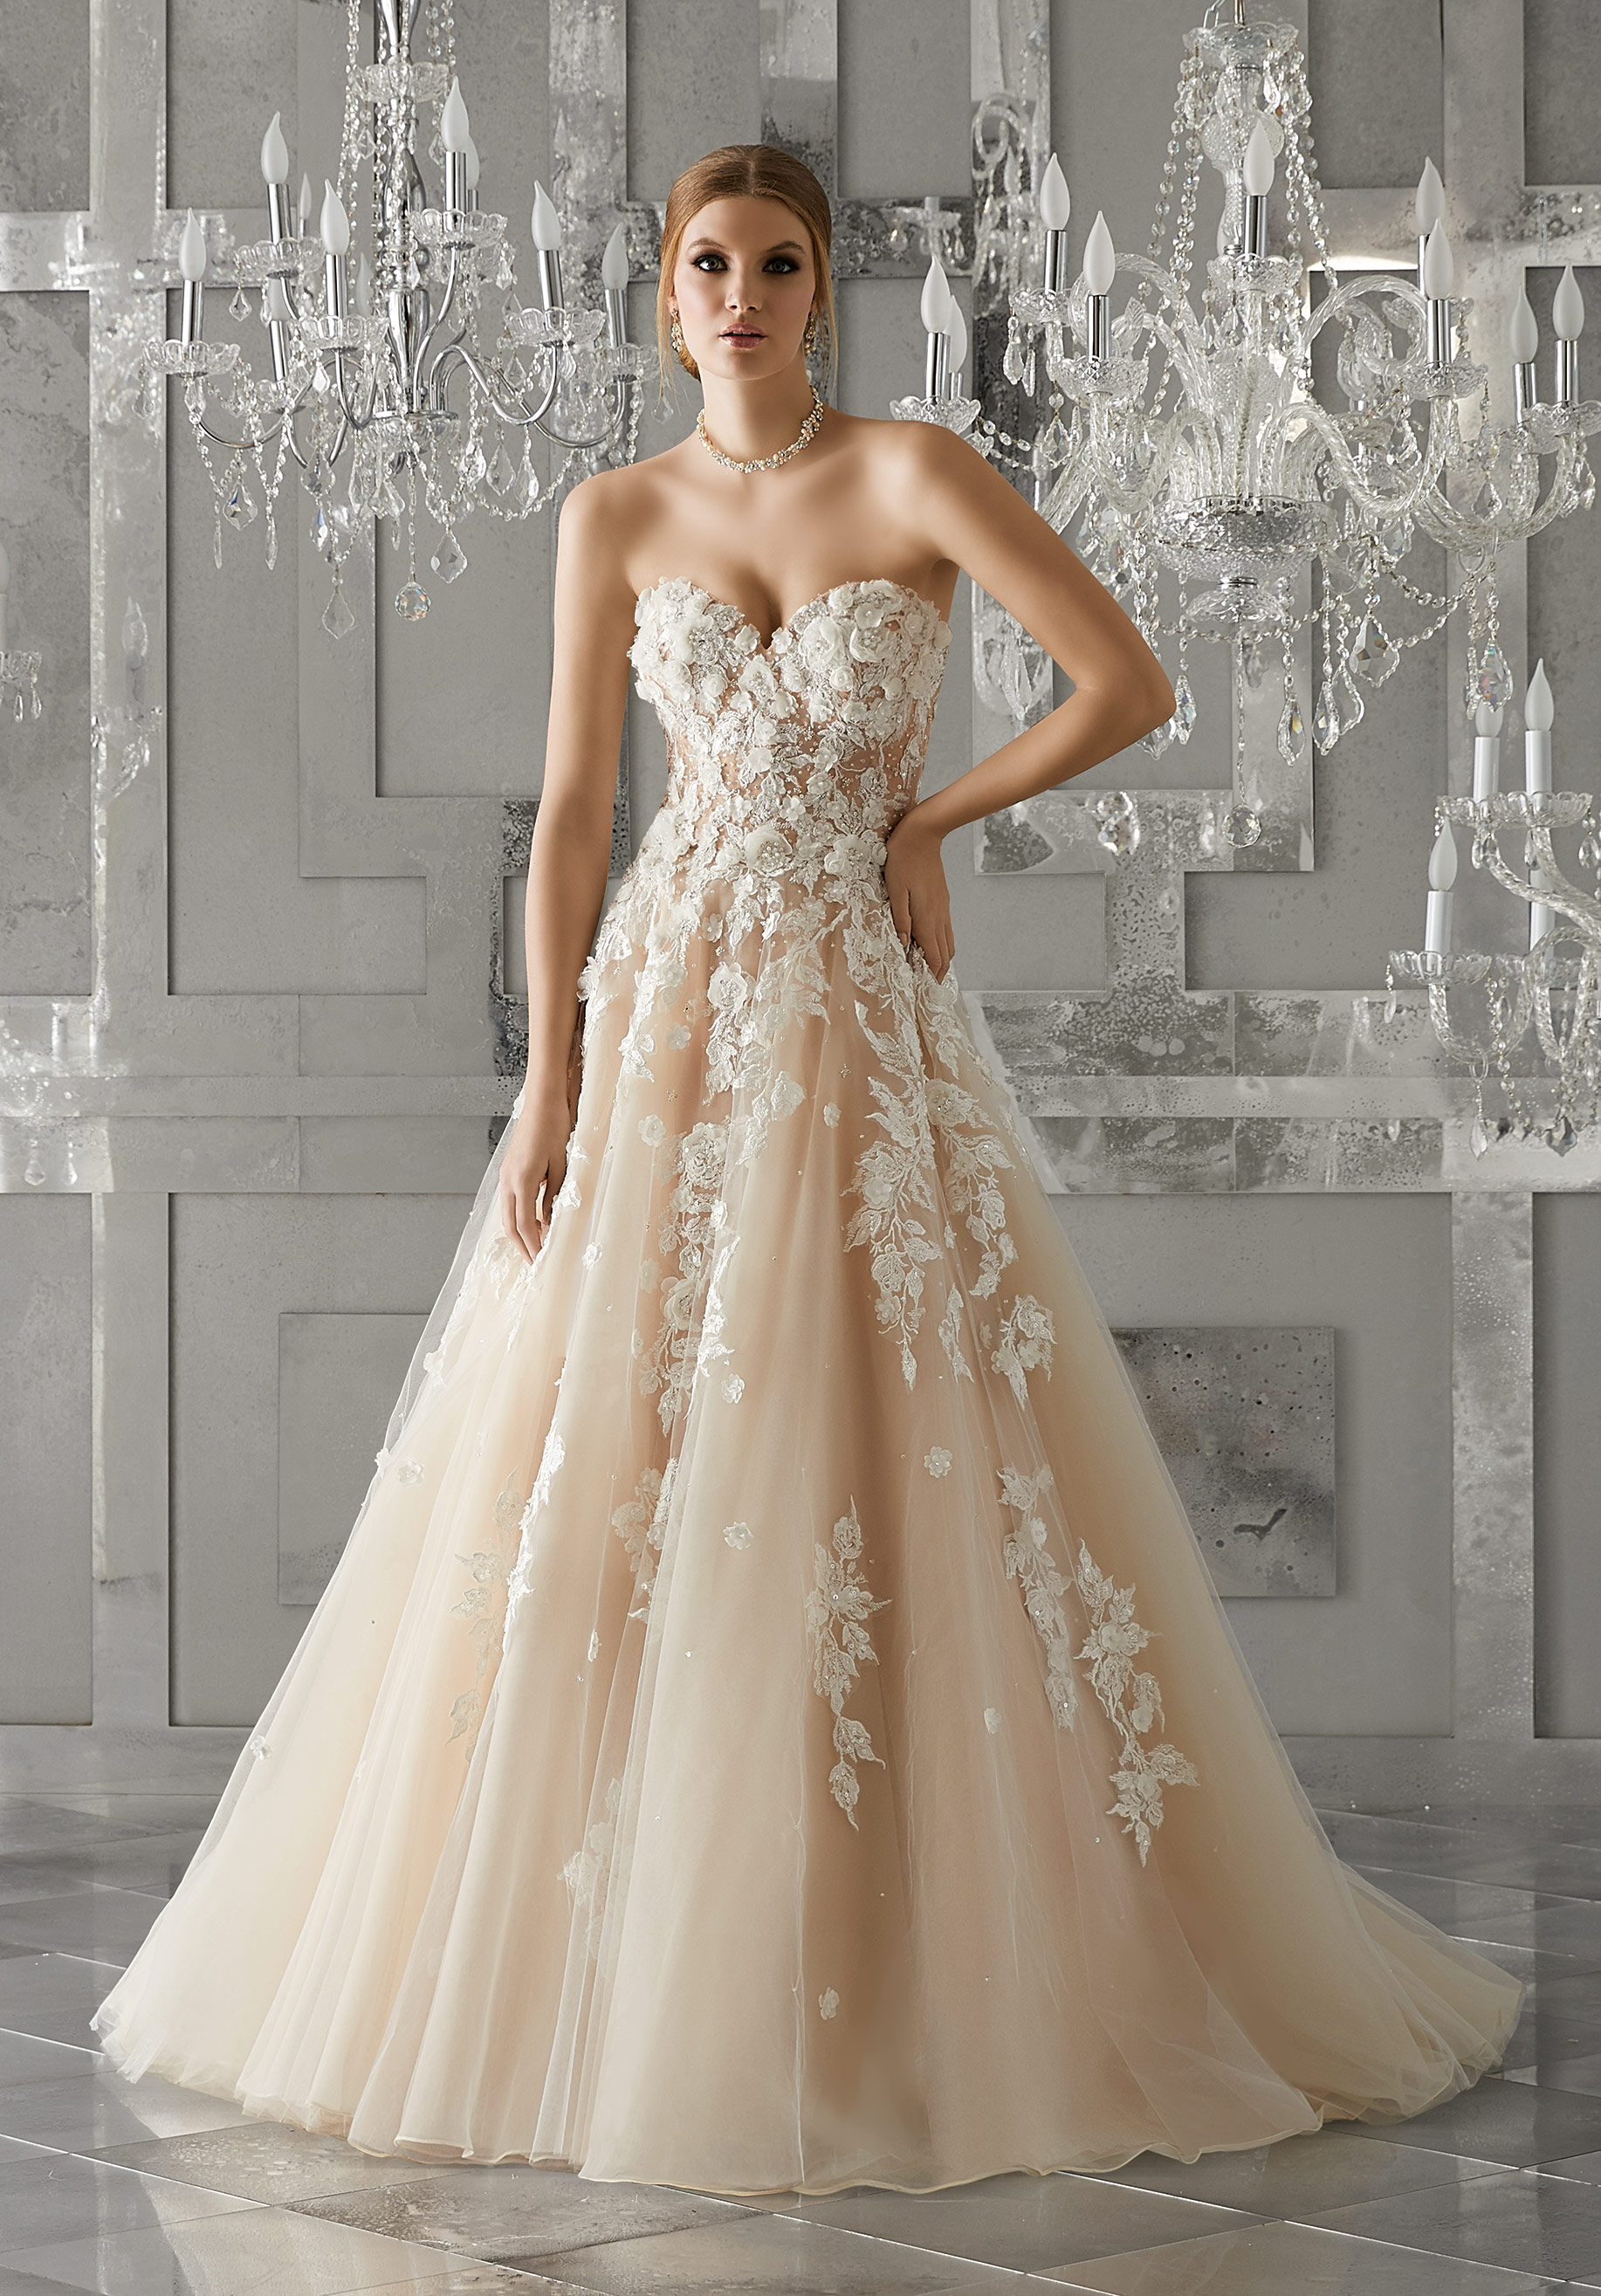 wedding dresses gowns photo - 1